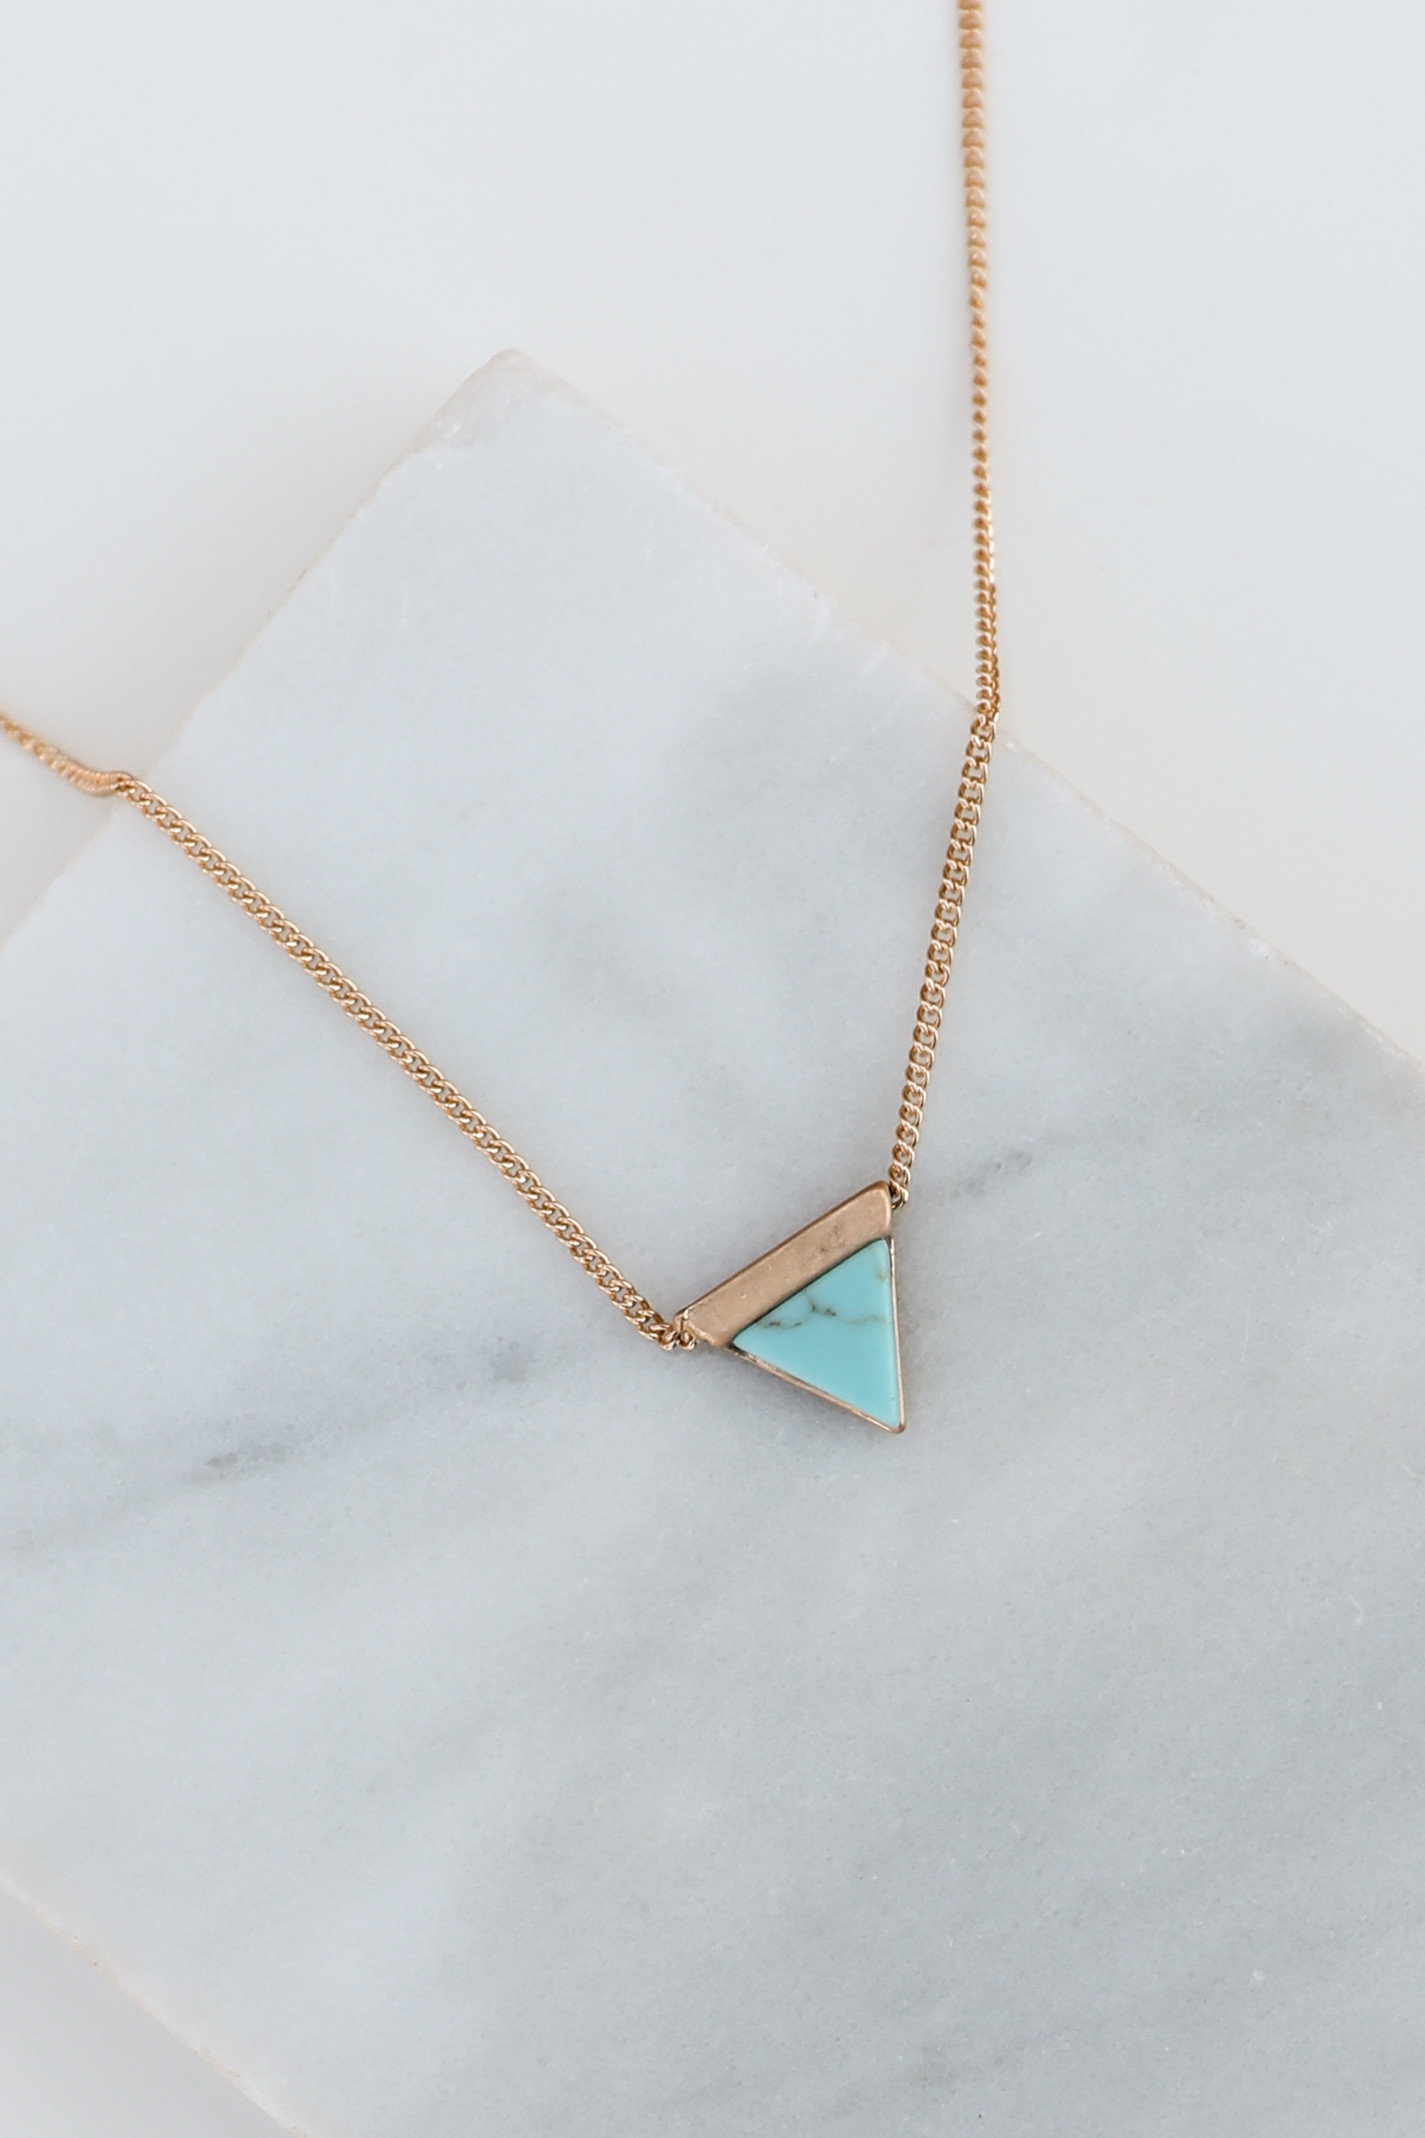 Gold Choker Necklace with Turquoise Marbled Triangle Pendant